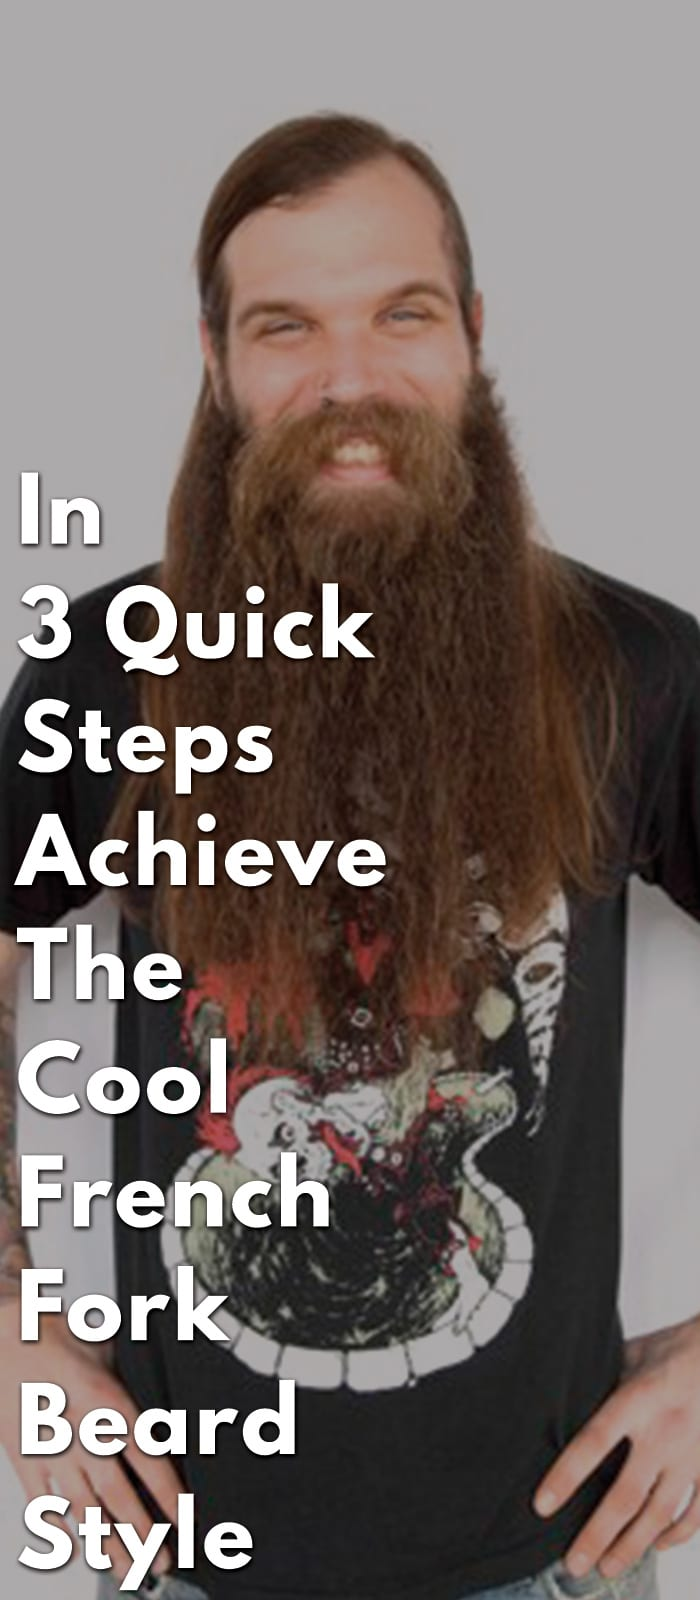 In-3-Quick-Steps-Achieve-The-Cool-French-Fork-Beard-Style.